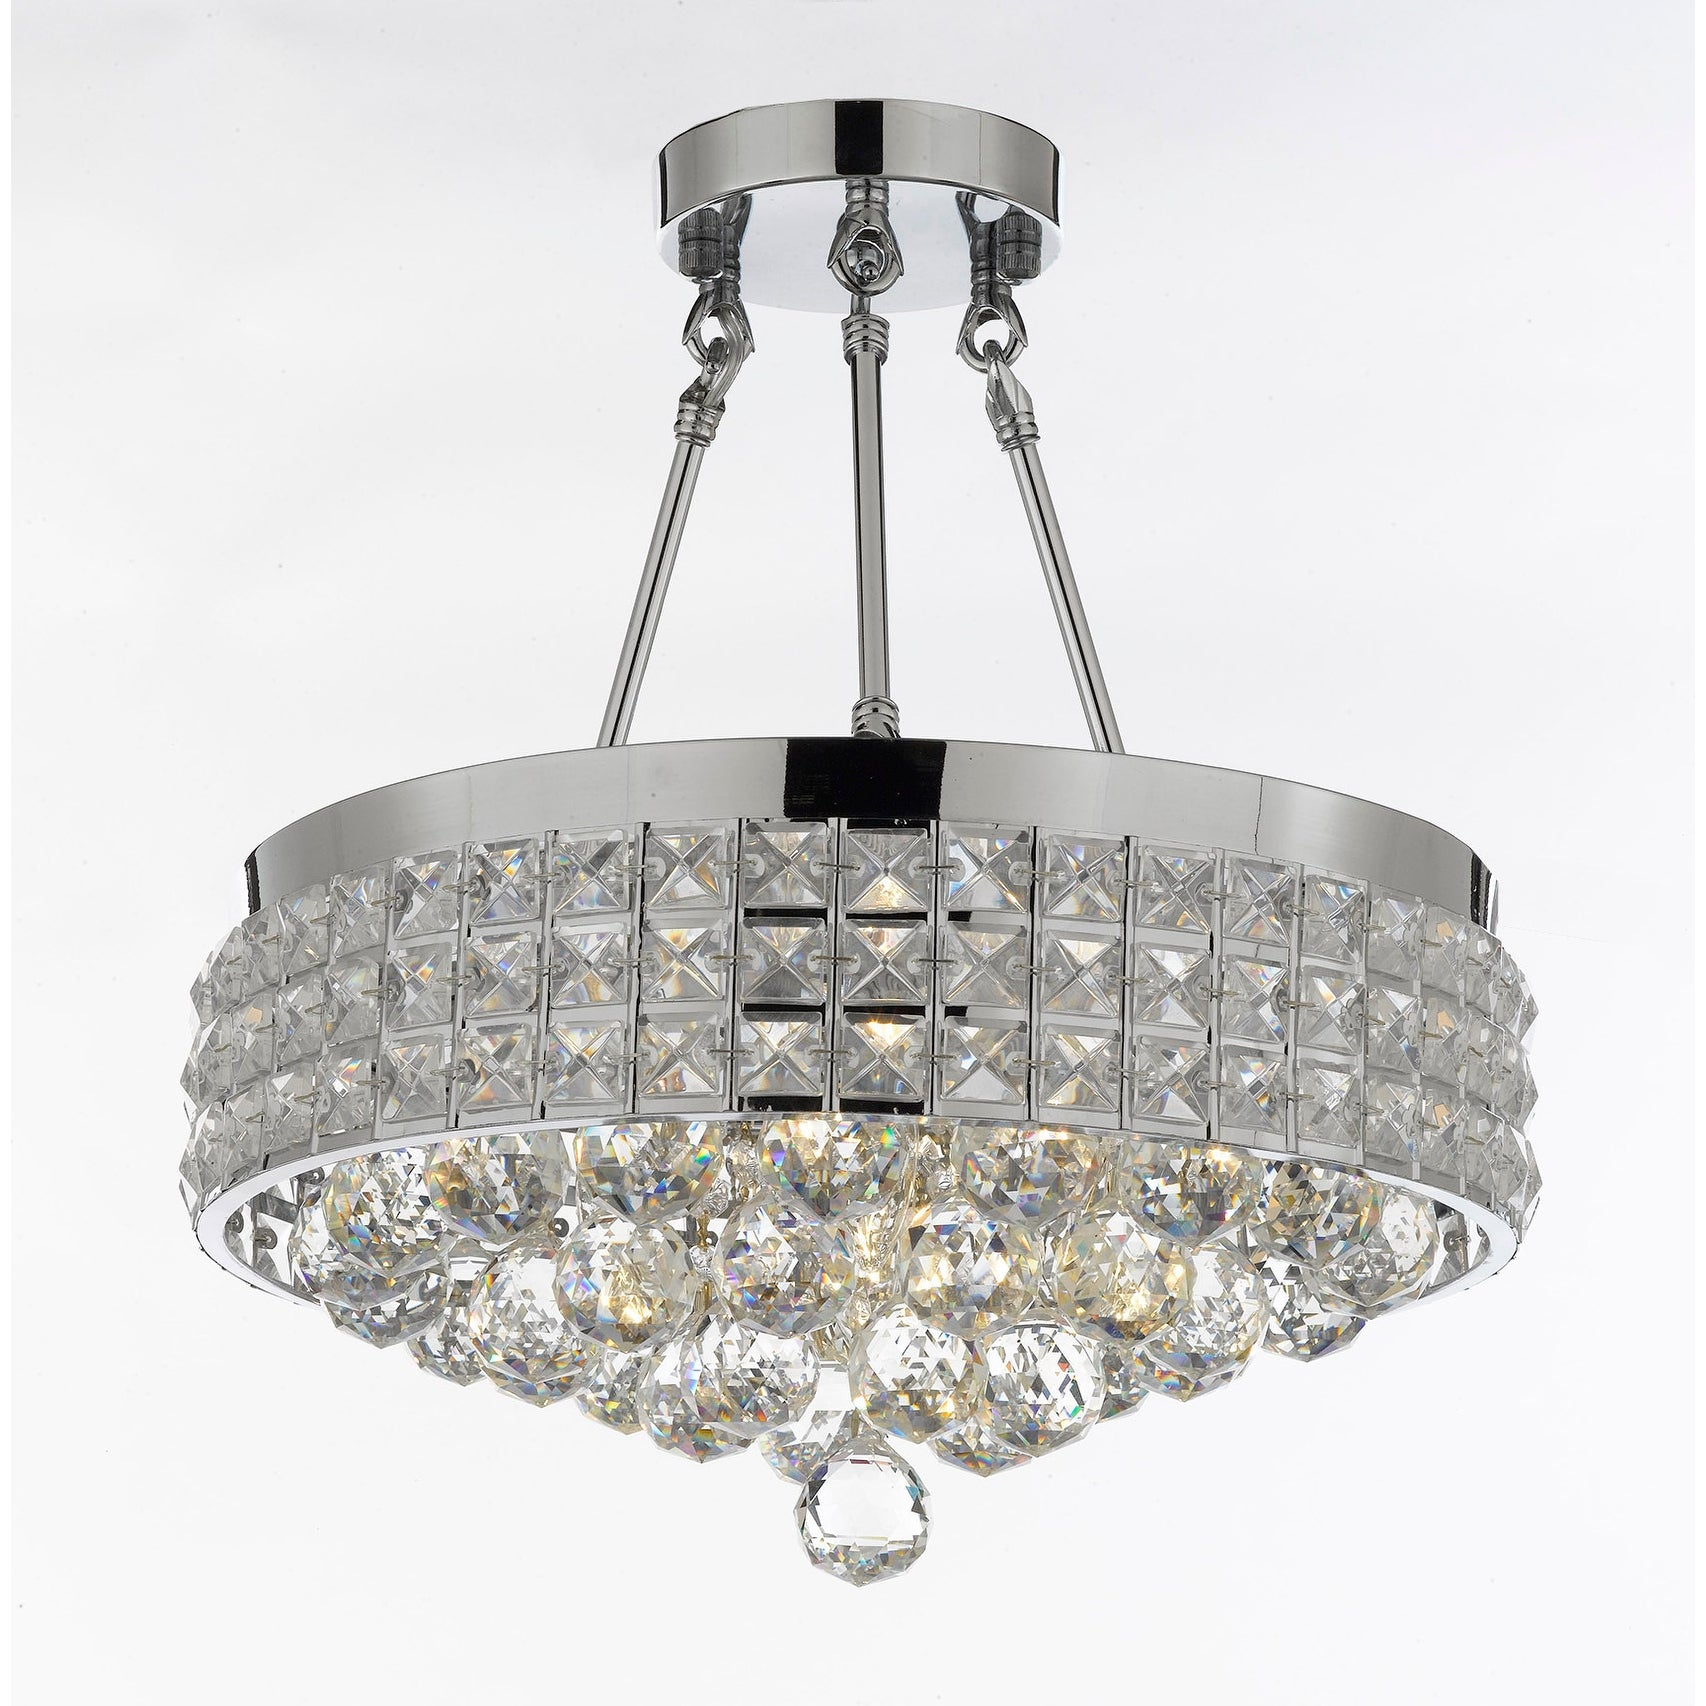 Semi Flush Mount French Empire Crystal Chandelier With 40MM